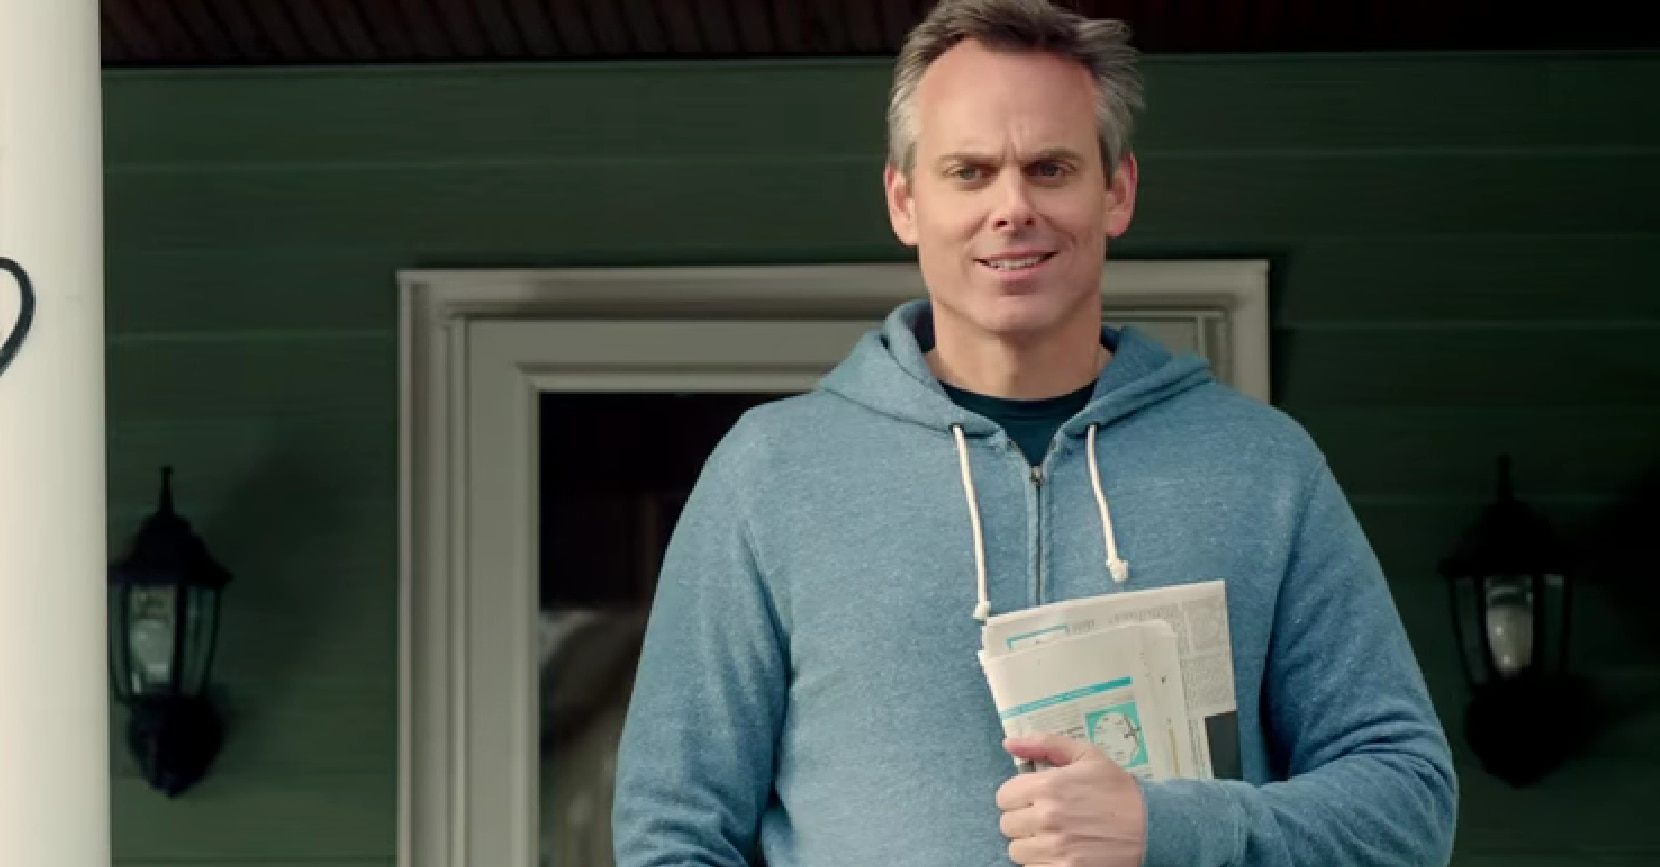 A screencap of Colin Cowherd from a 2013 ESPN Radio commercial.